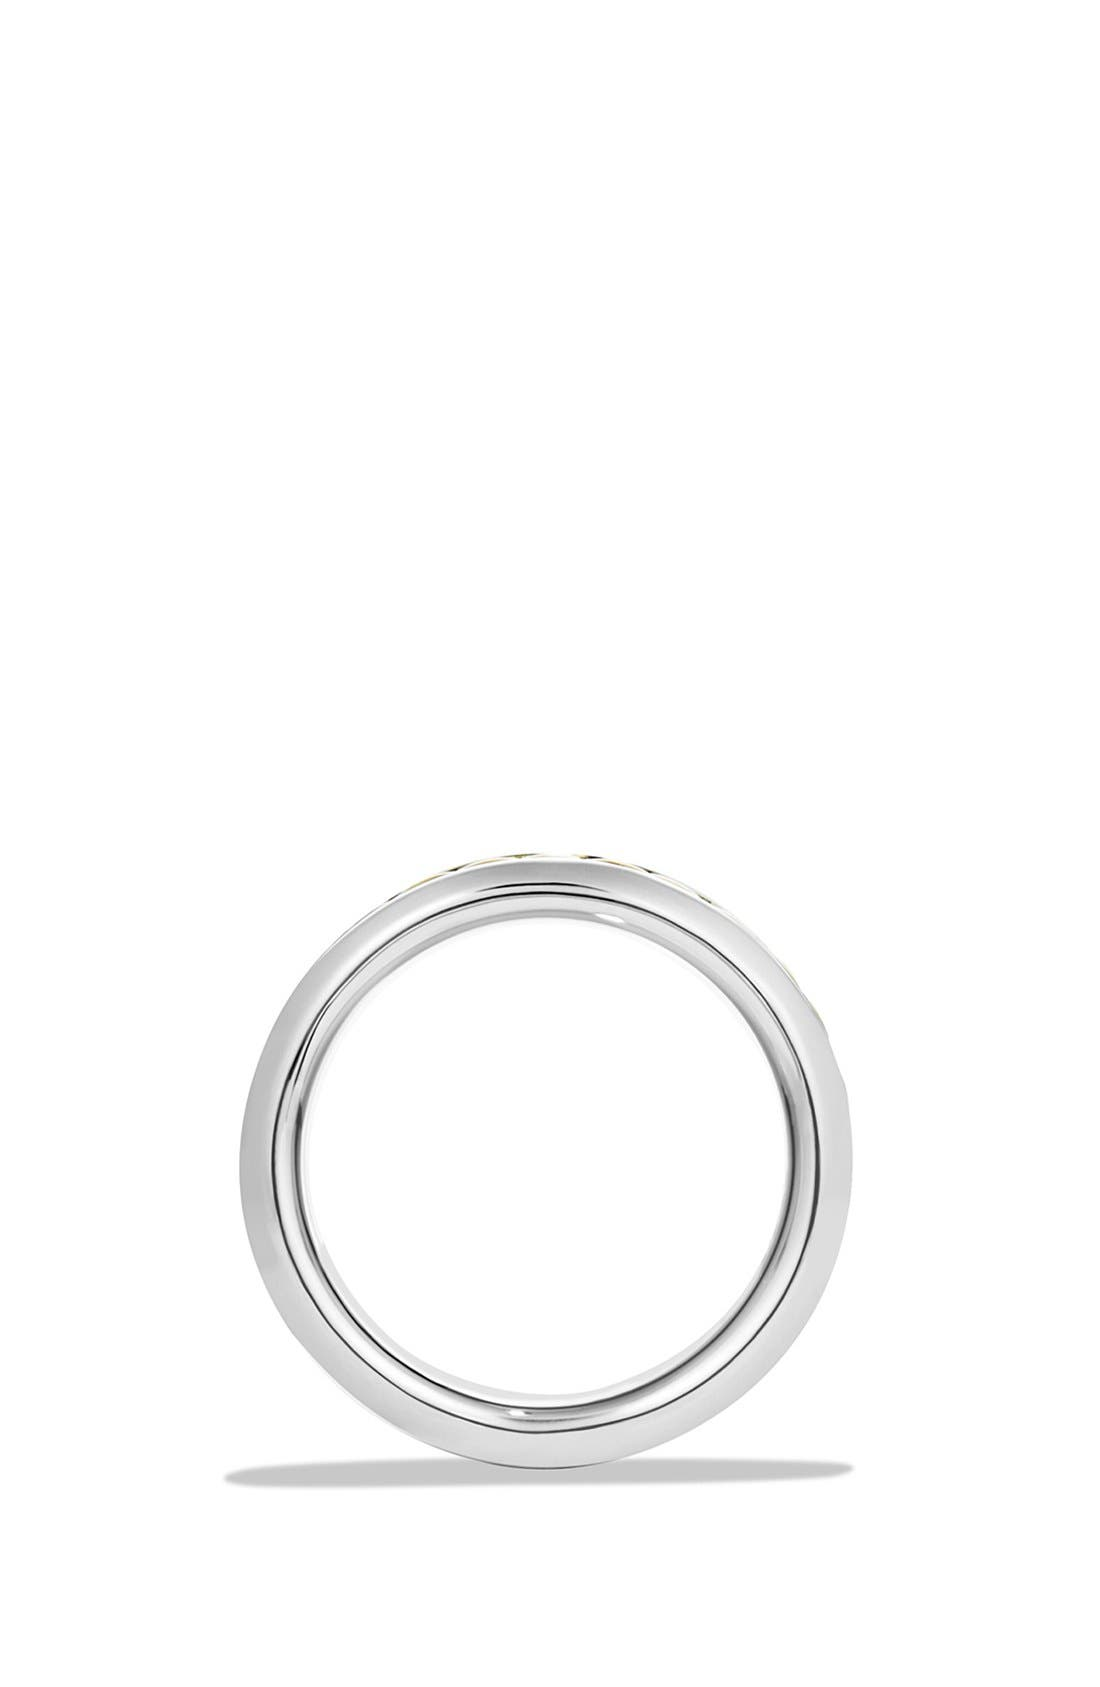 'Cable Classics' Band Ring with 18K Gold,                             Alternate thumbnail 2, color,                             TWO TONE